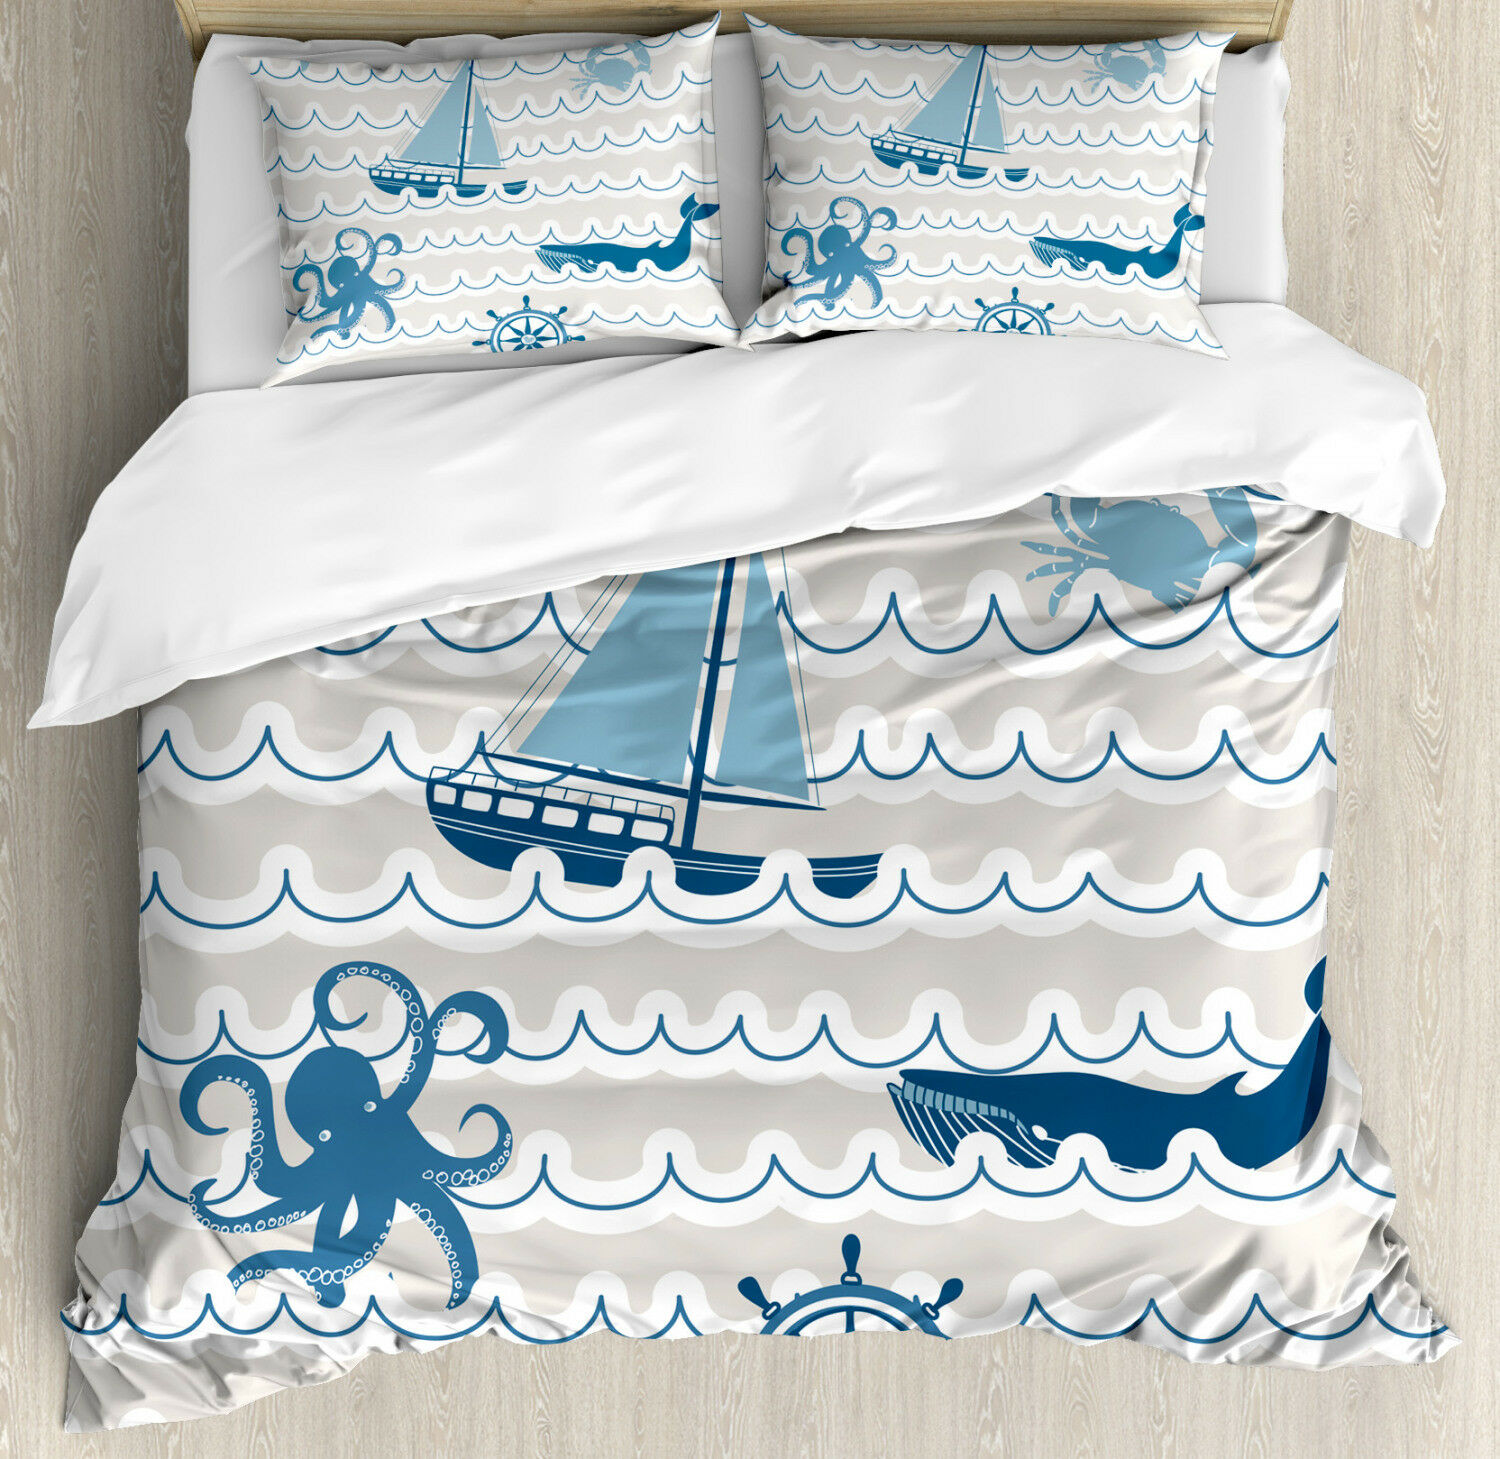 Kids Duvet Cover Set with Pillow Shams Cartoon Ship Whale Waves Print